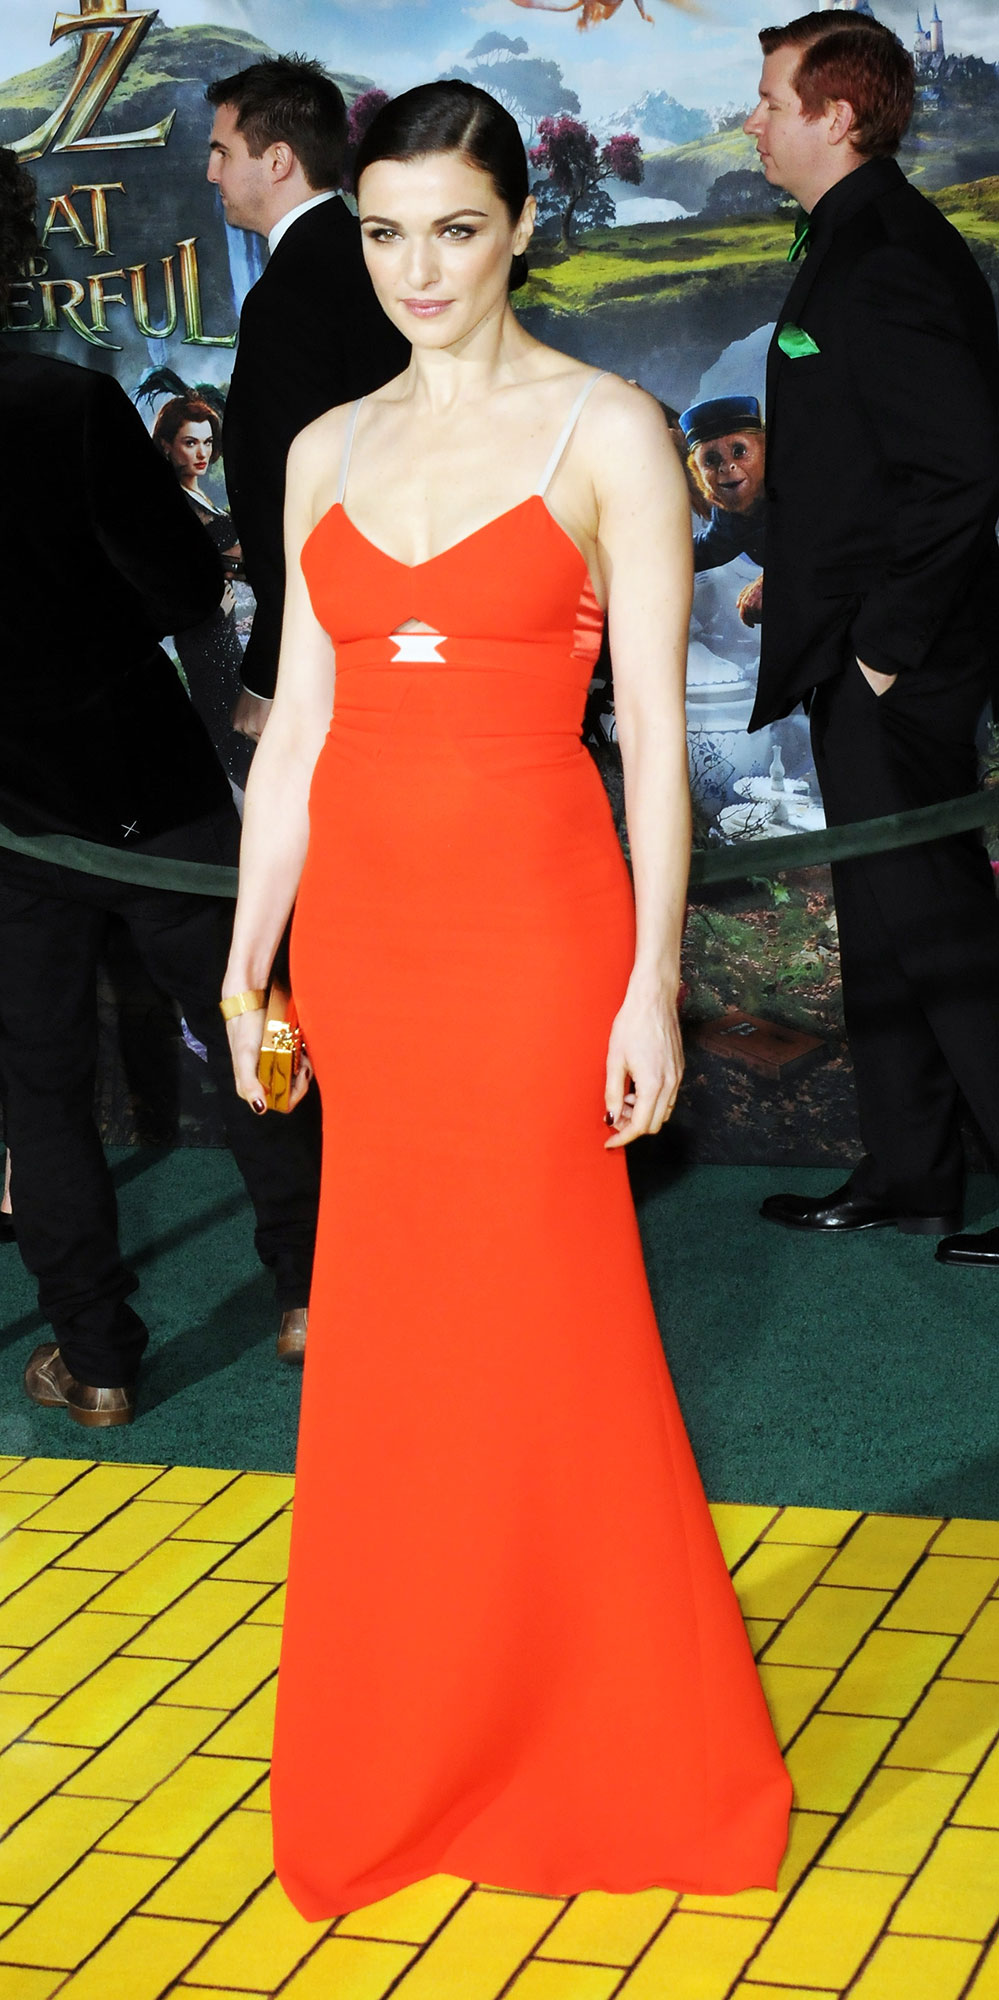 Happy Birthday, Rachel Weisz! See Her Hottest Red Carpet Looks - At the premiere of Oz the Great and Powerful, the Brit wore a slim Victoria Beckham gown in a bold tangerine hue.